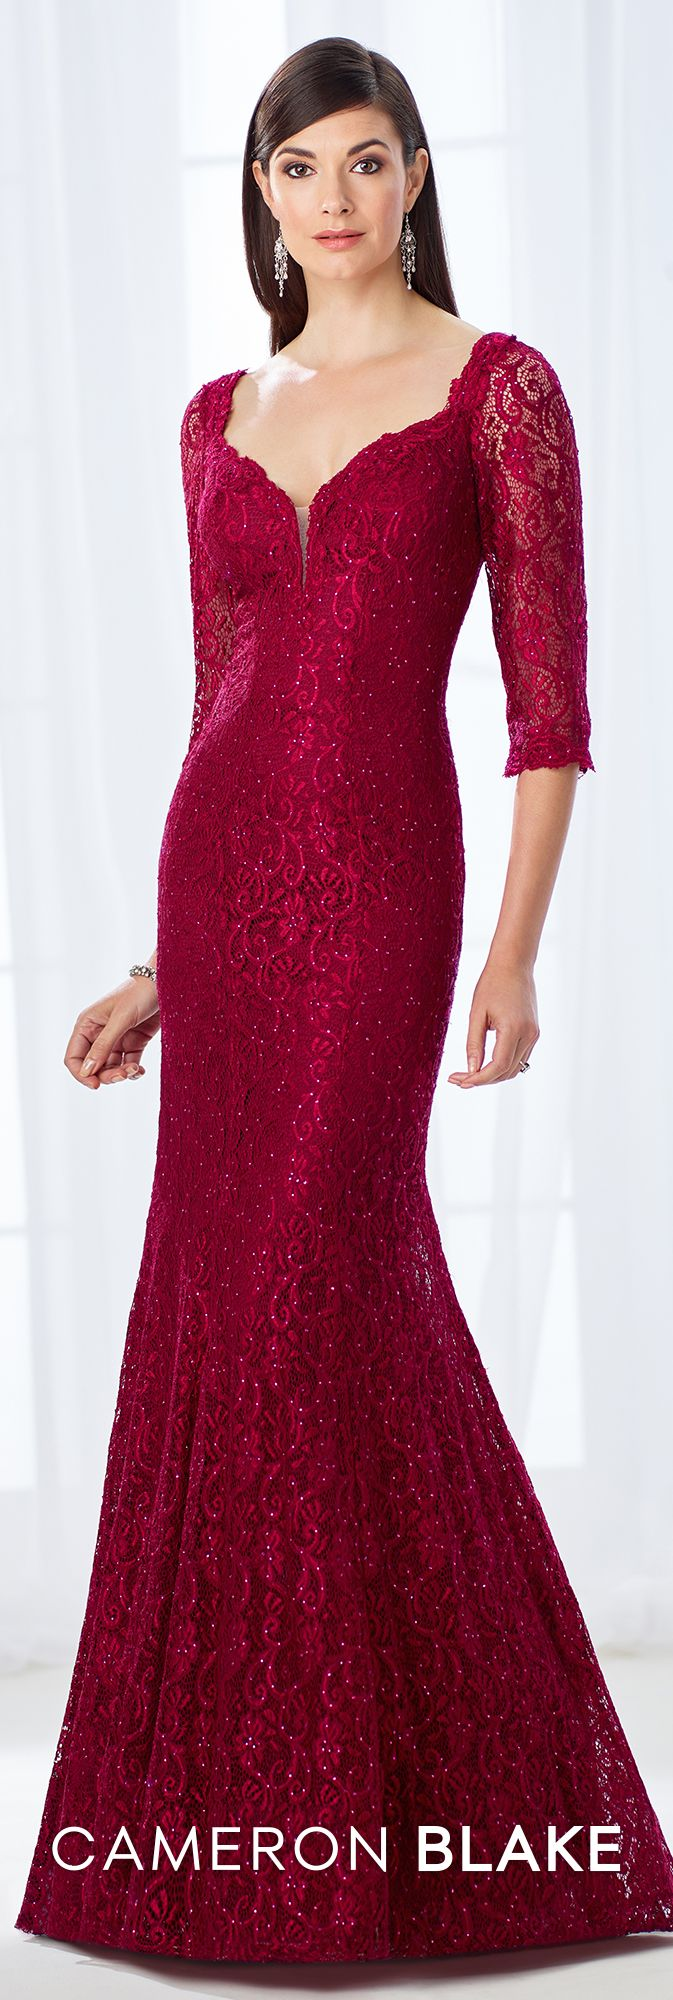 Cameron Blake 118677 - Rich and superb, this allover lace trumpet gown accented with heat set stones offers scalloped illusion lace three-quarter sleeves, a plunging curved V-neckline with an illusion modesty panel, a V-back, and a softly gathered lower skirt with a sweep train.